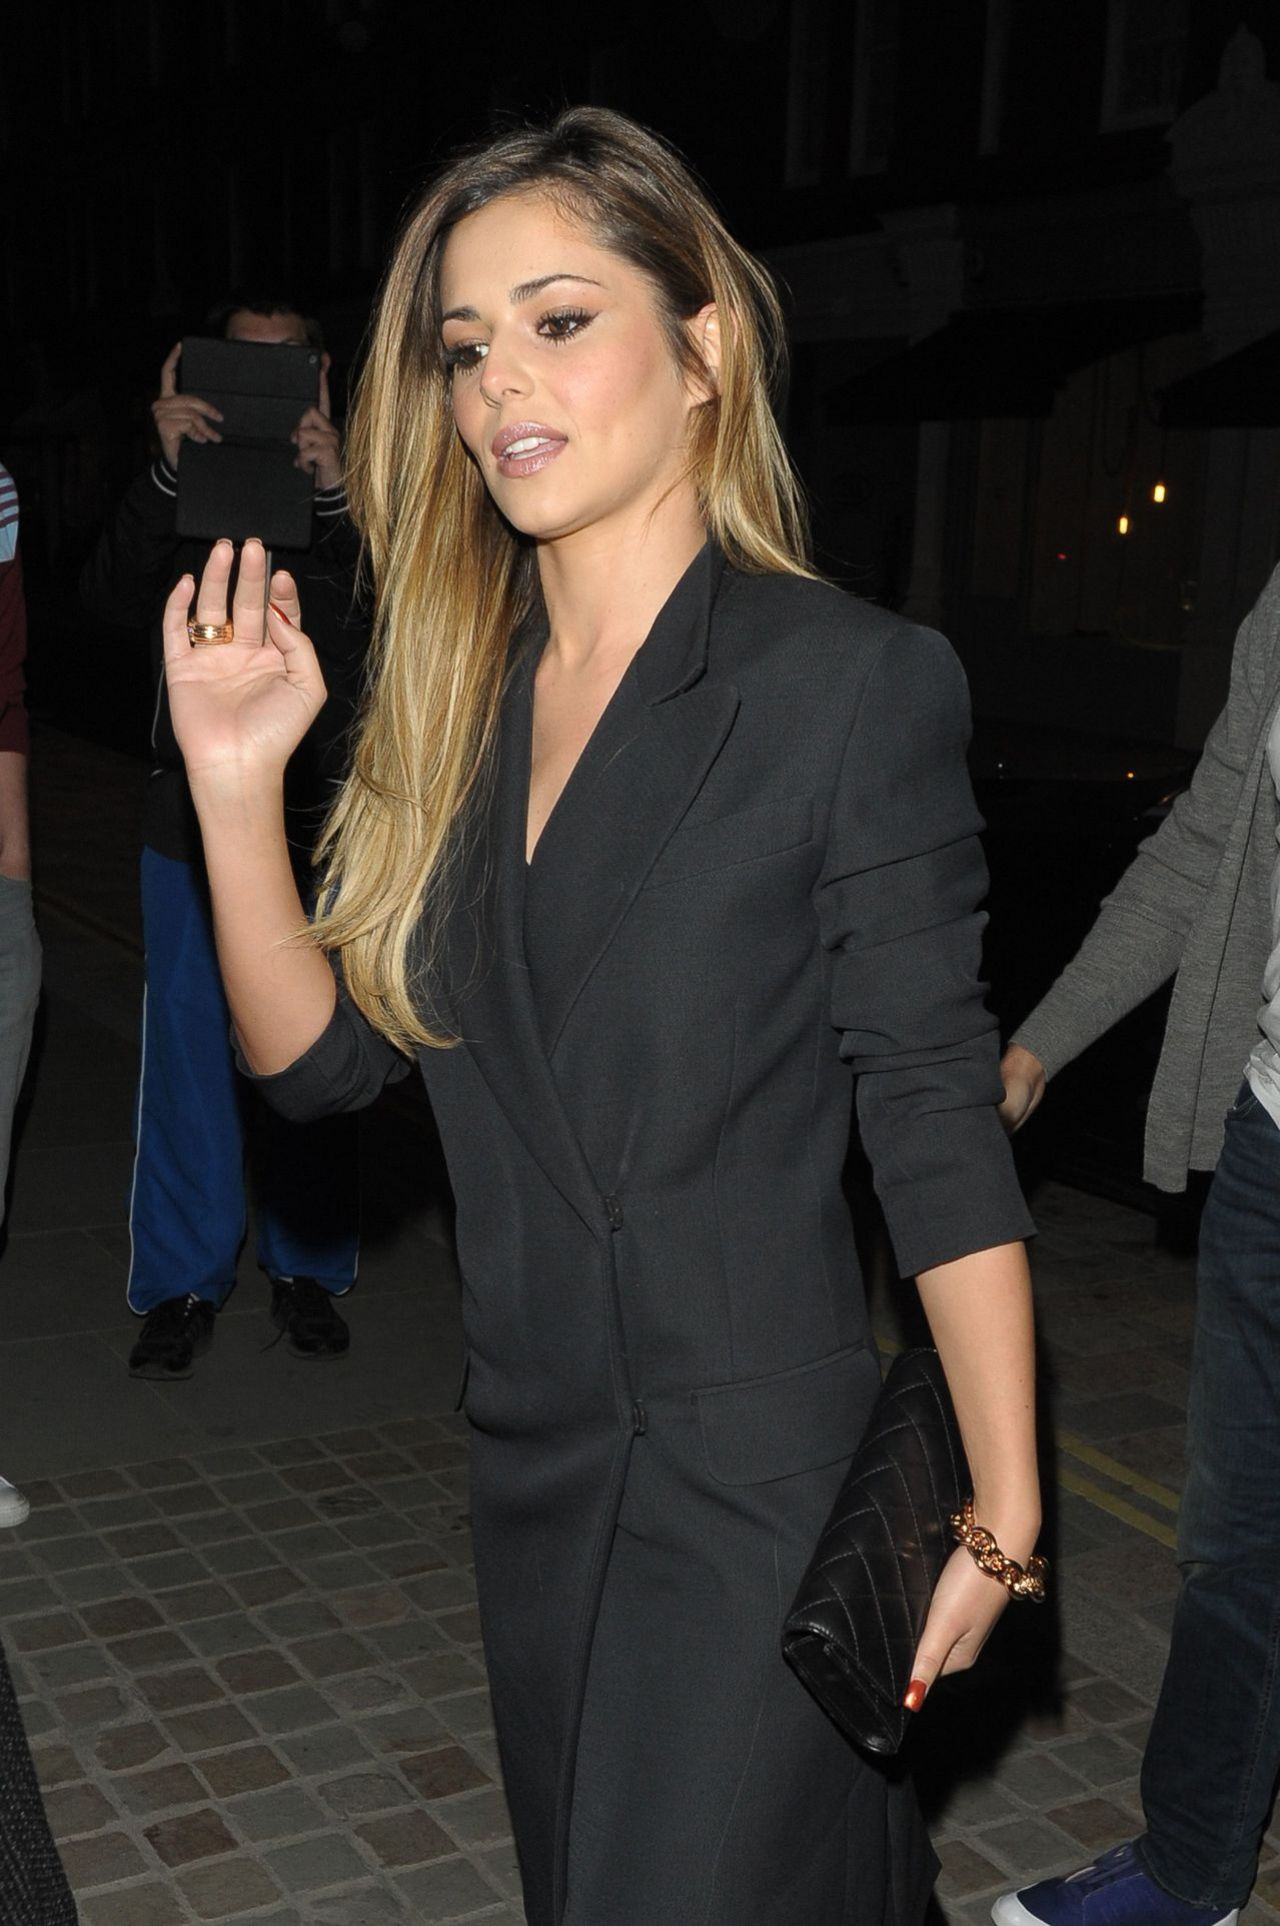 Cheryl Cole night Out Style - Chiltern Firehouse ...